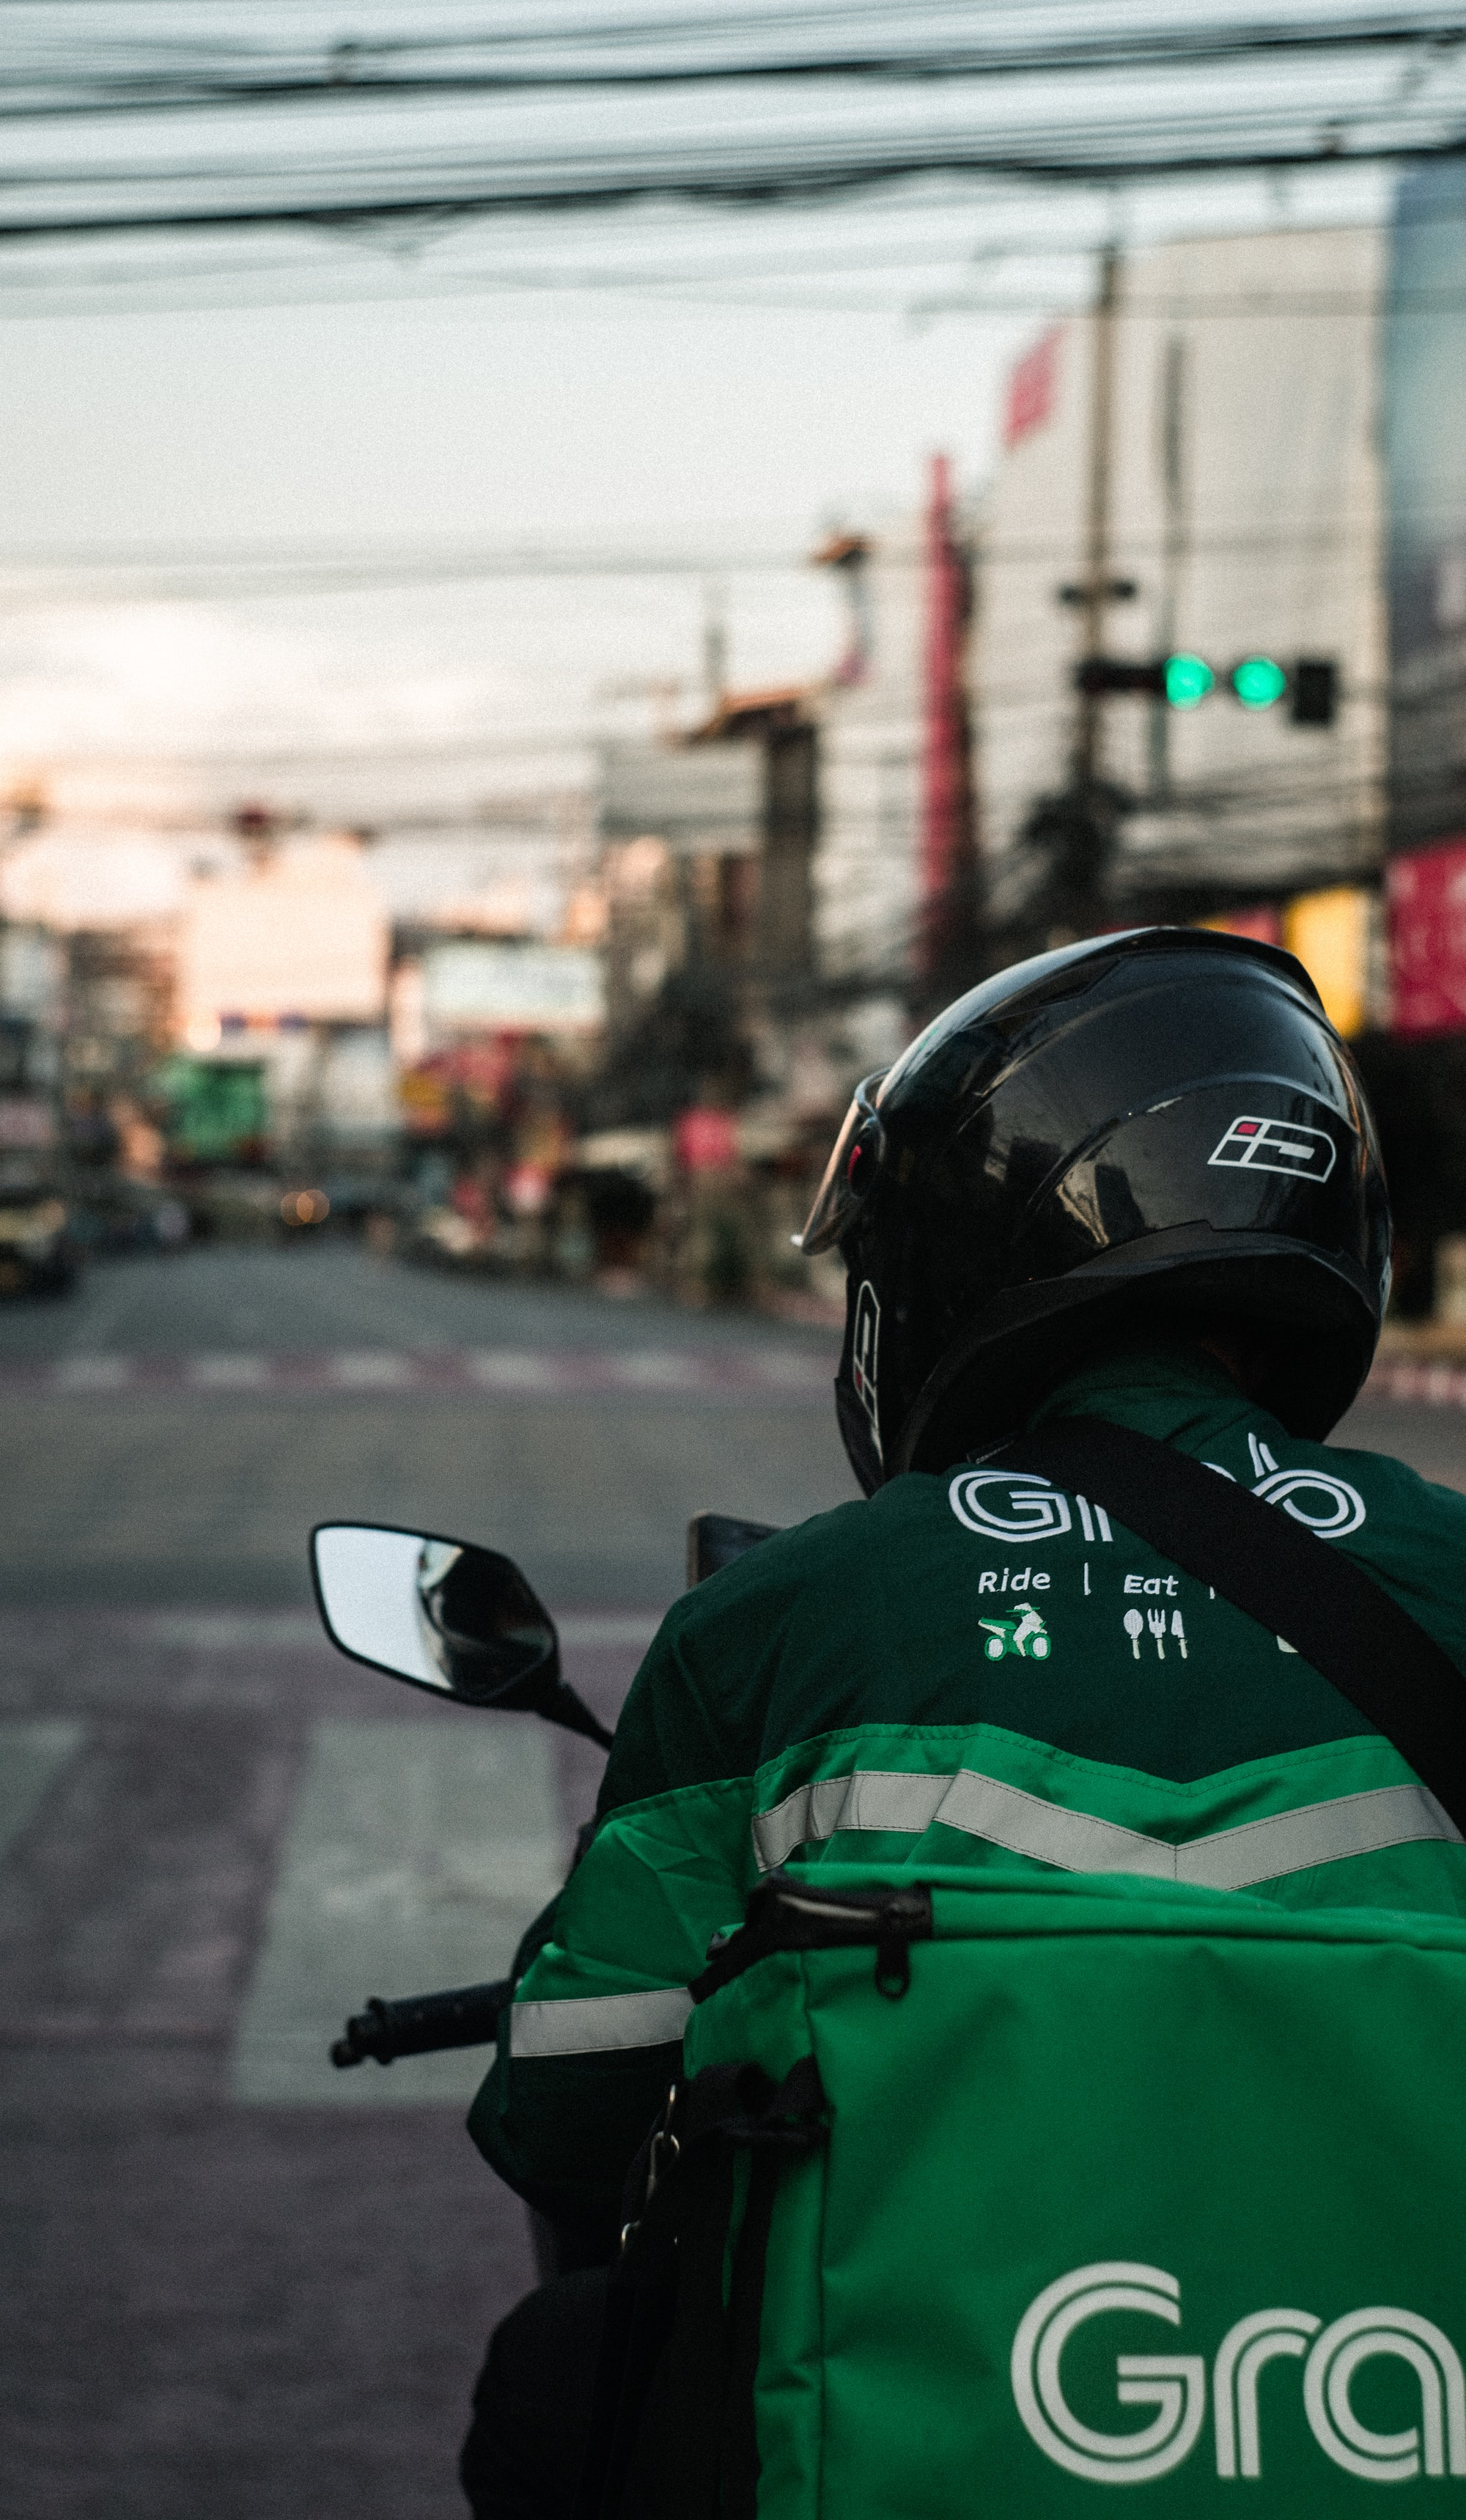 GRAB courier makes delivery